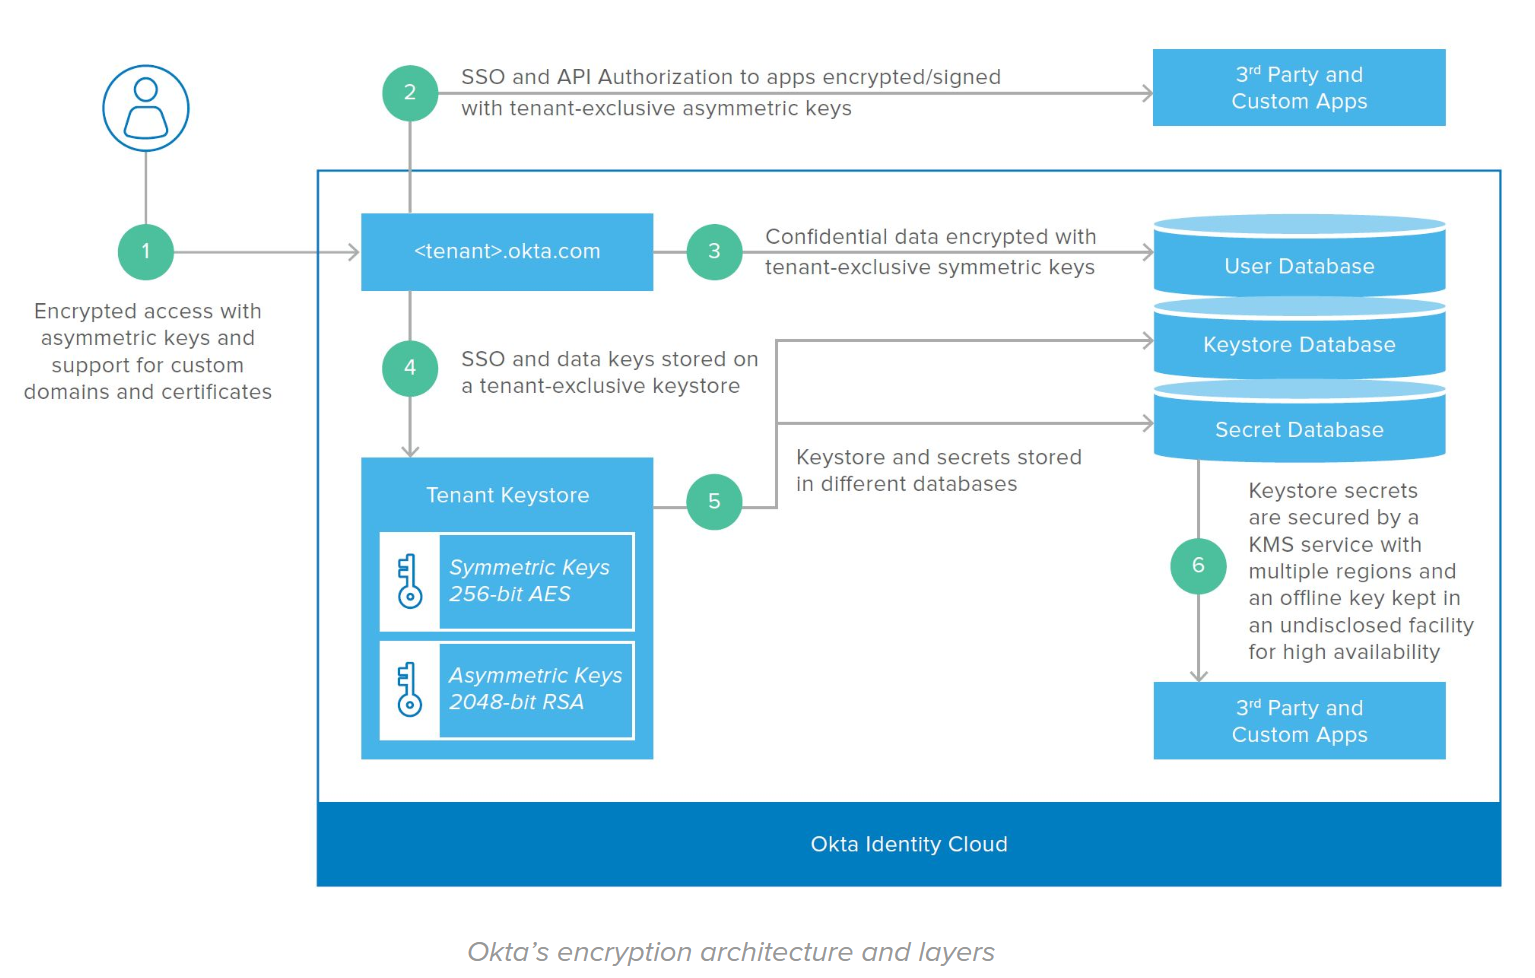 Okta's encryption architecture and layers.